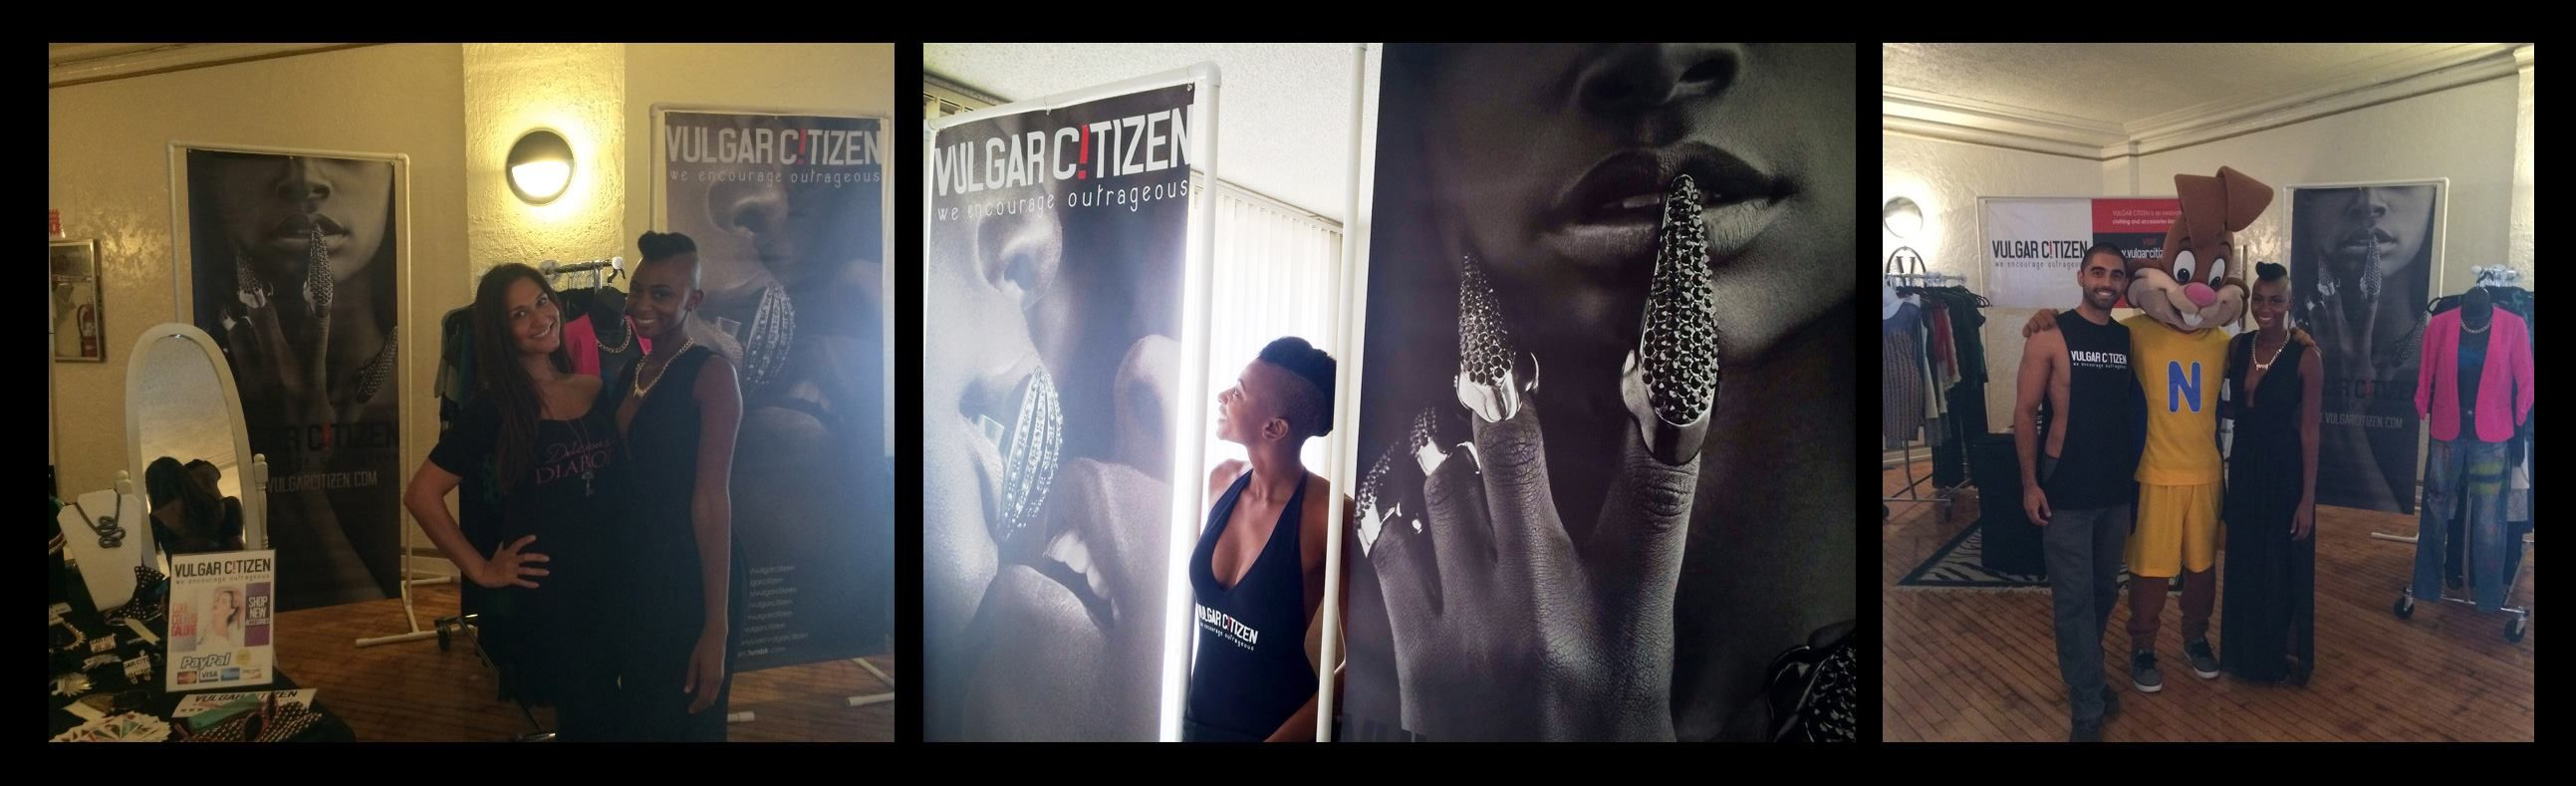 "Vulgar Citizen uses eSigns.com! Check out their awesome review, ""Special thanks again to eSigns.com for printing these amazing 7' ft tall VULGAR CITIZEN banners! We got so many compliments during our most recent pop up boutique at the #oddmarketla event!"" -Vel J."